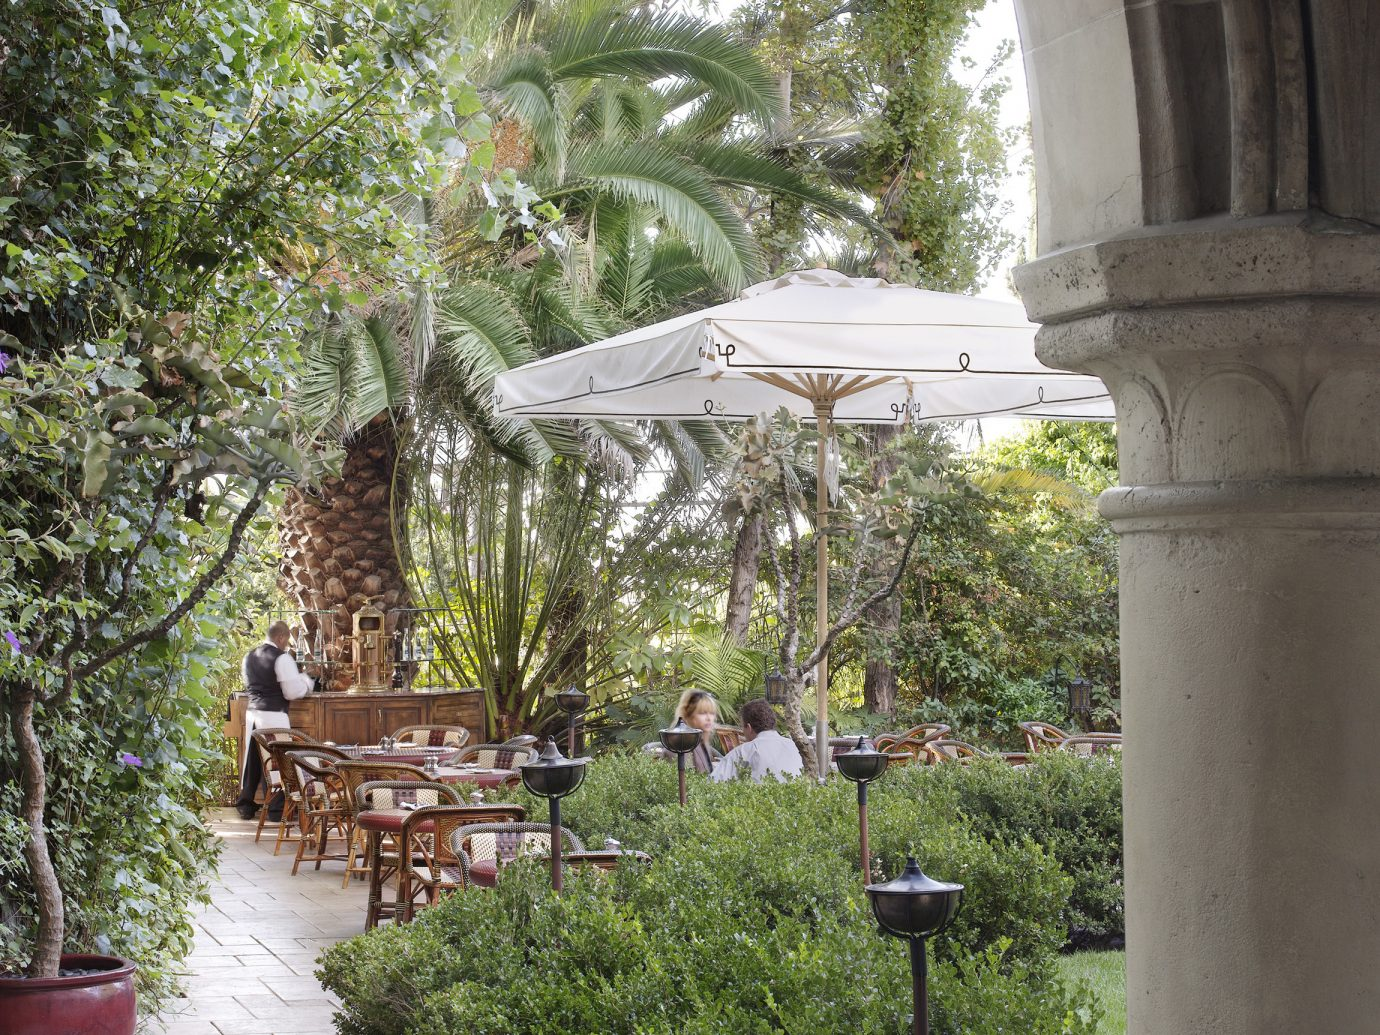 Outdoor dining at Chateau Marmont, LA